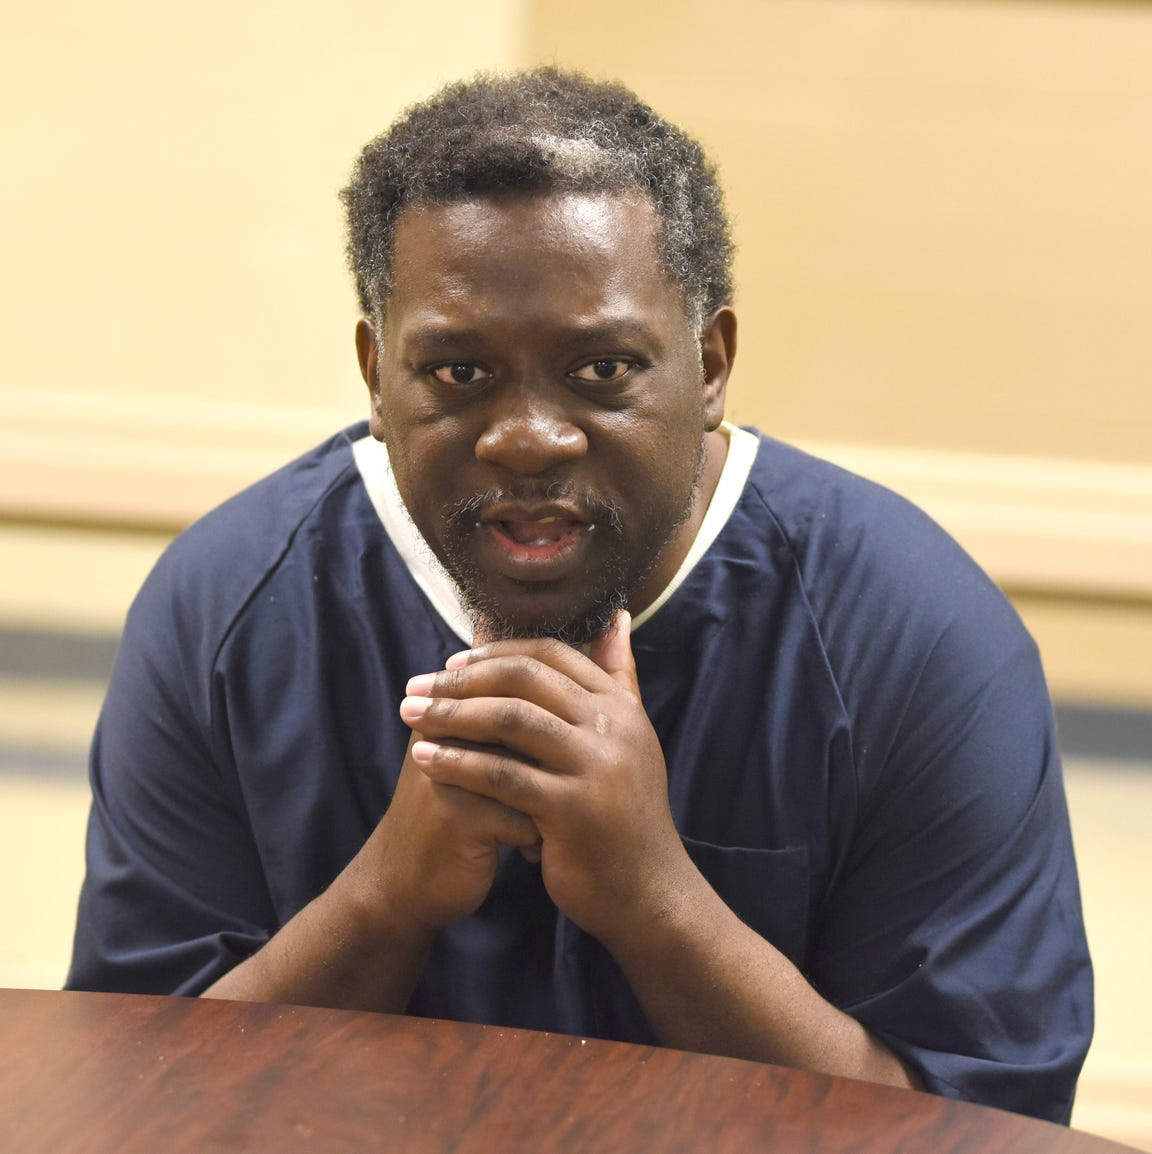 Inmate Damone Signil soon will be paroled directly from the maximum security Woodland Center to his parents' home, after spending roughly 20 years either in prison or a mental hospital. Home visits while incarcerated are prohibited under Michigan law.